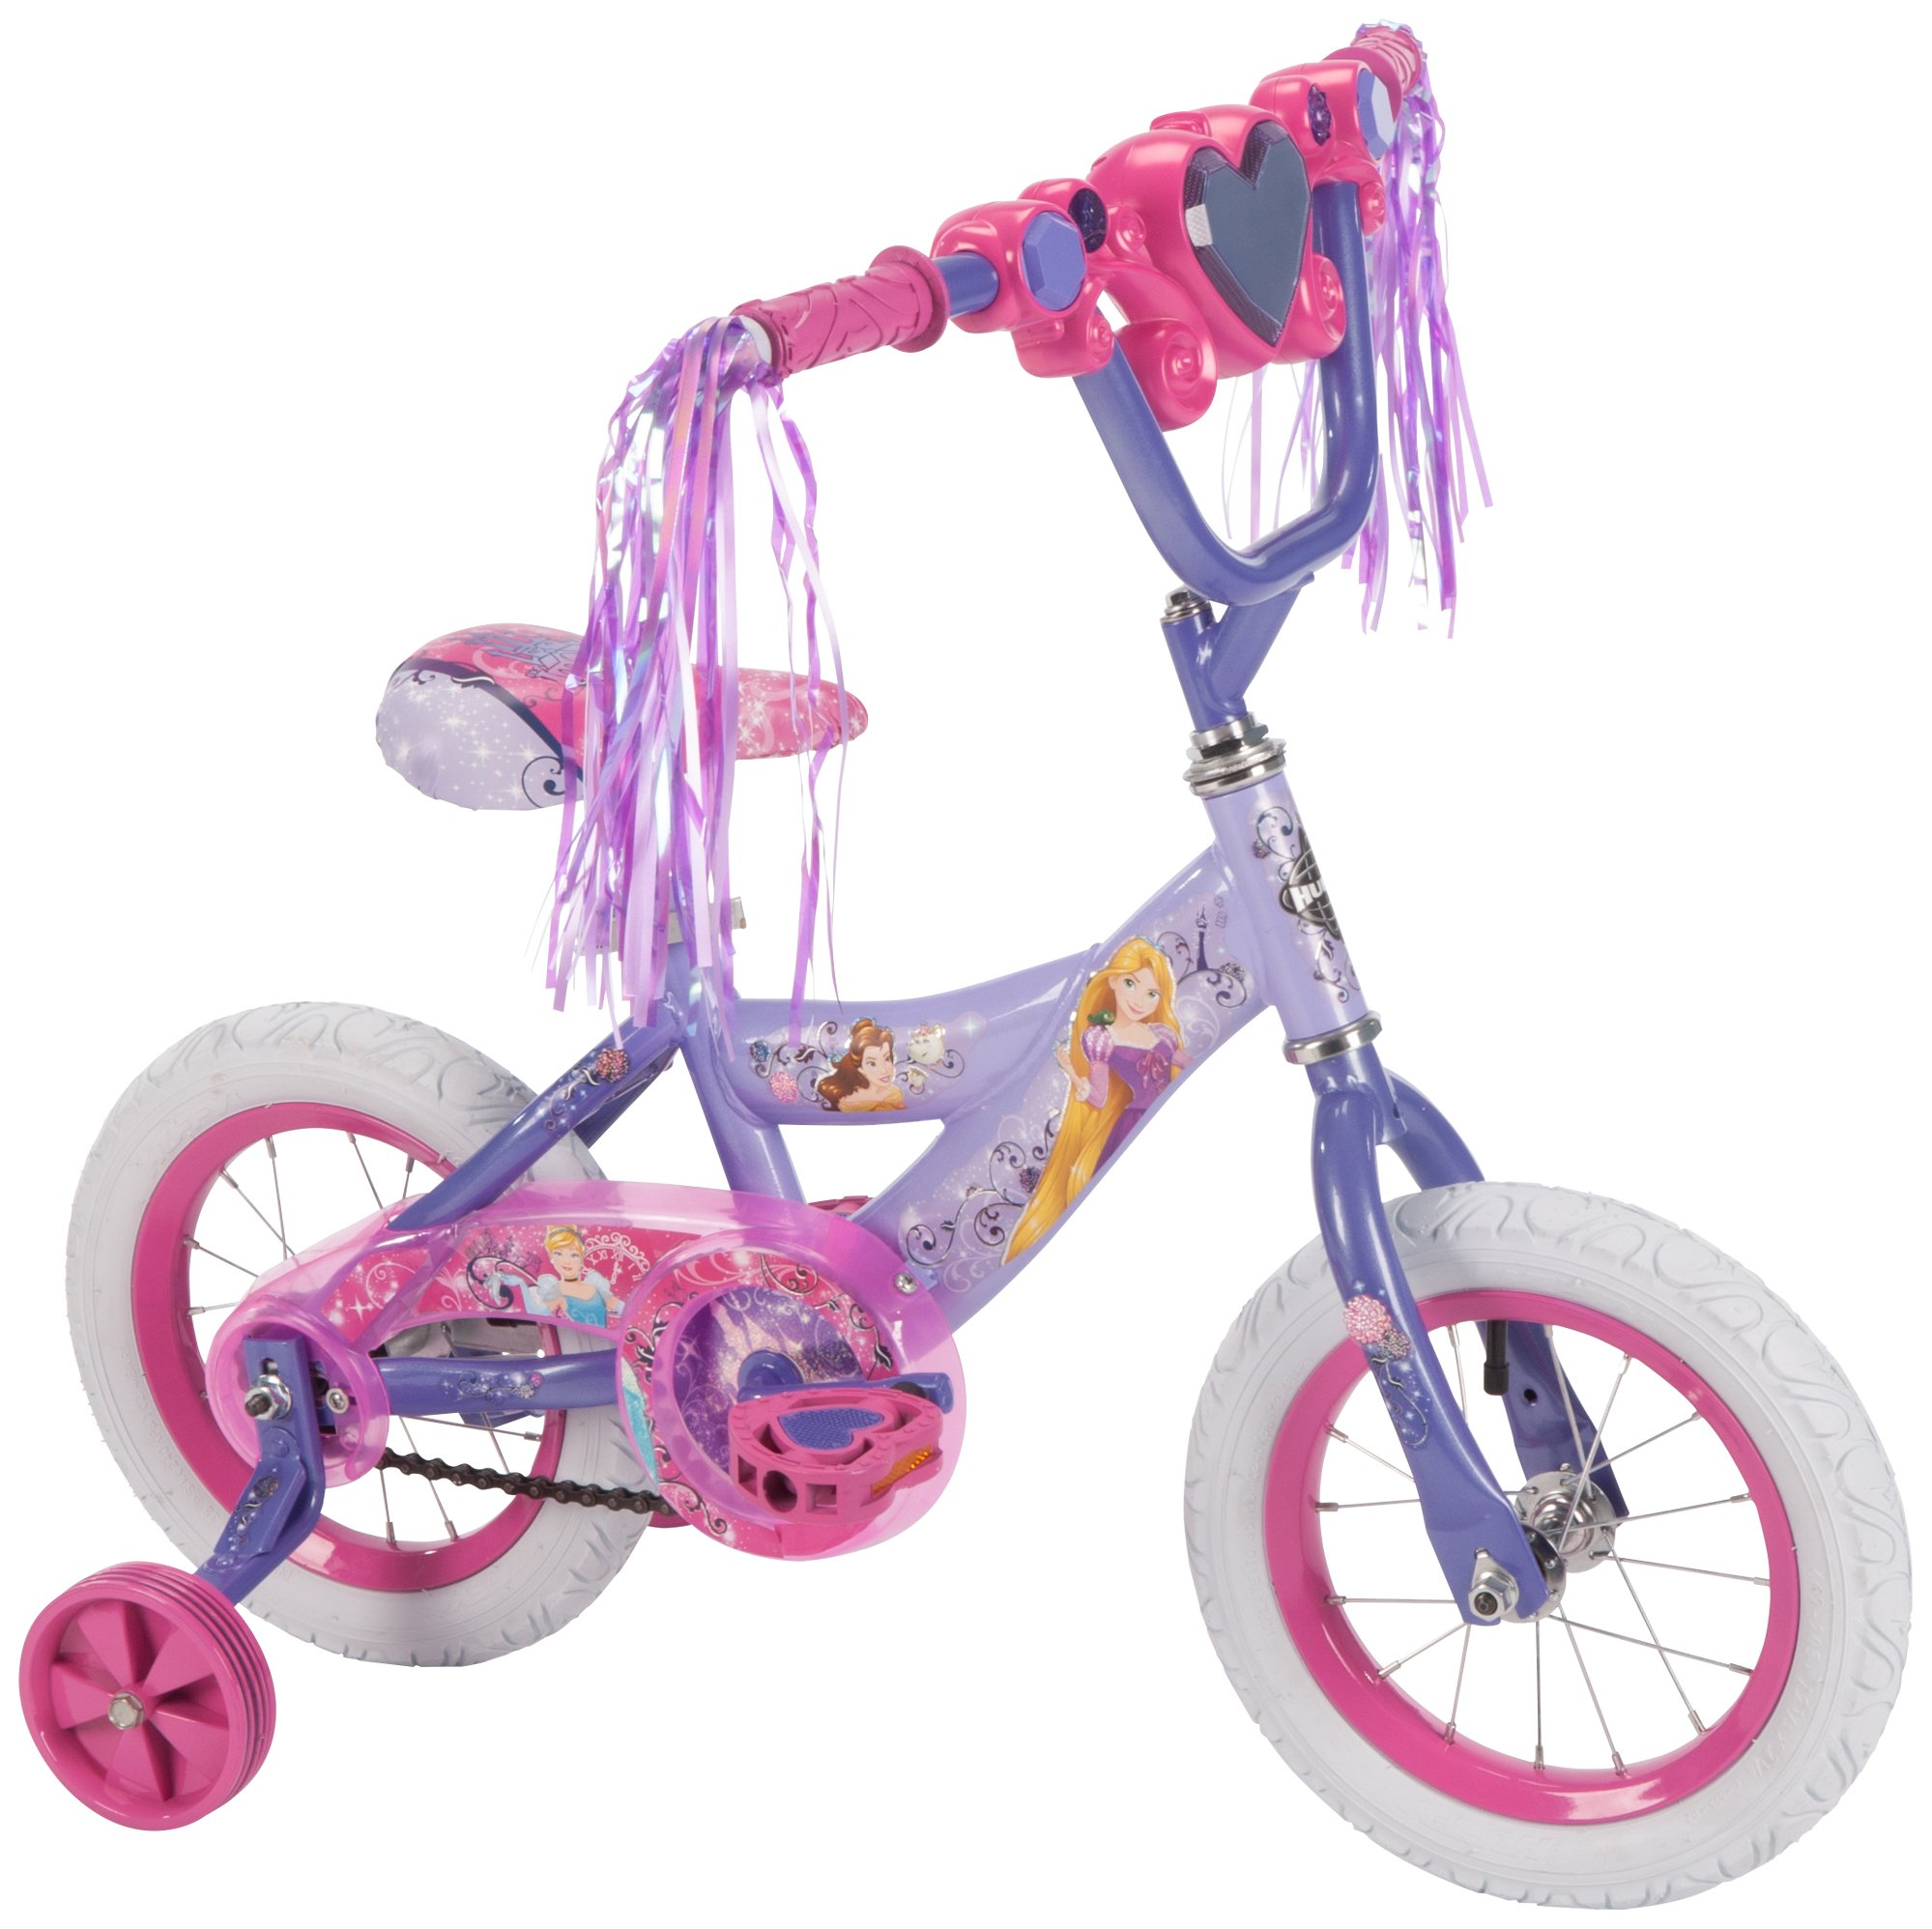 Disney 12'' Princess Girls' Bike by Huffy